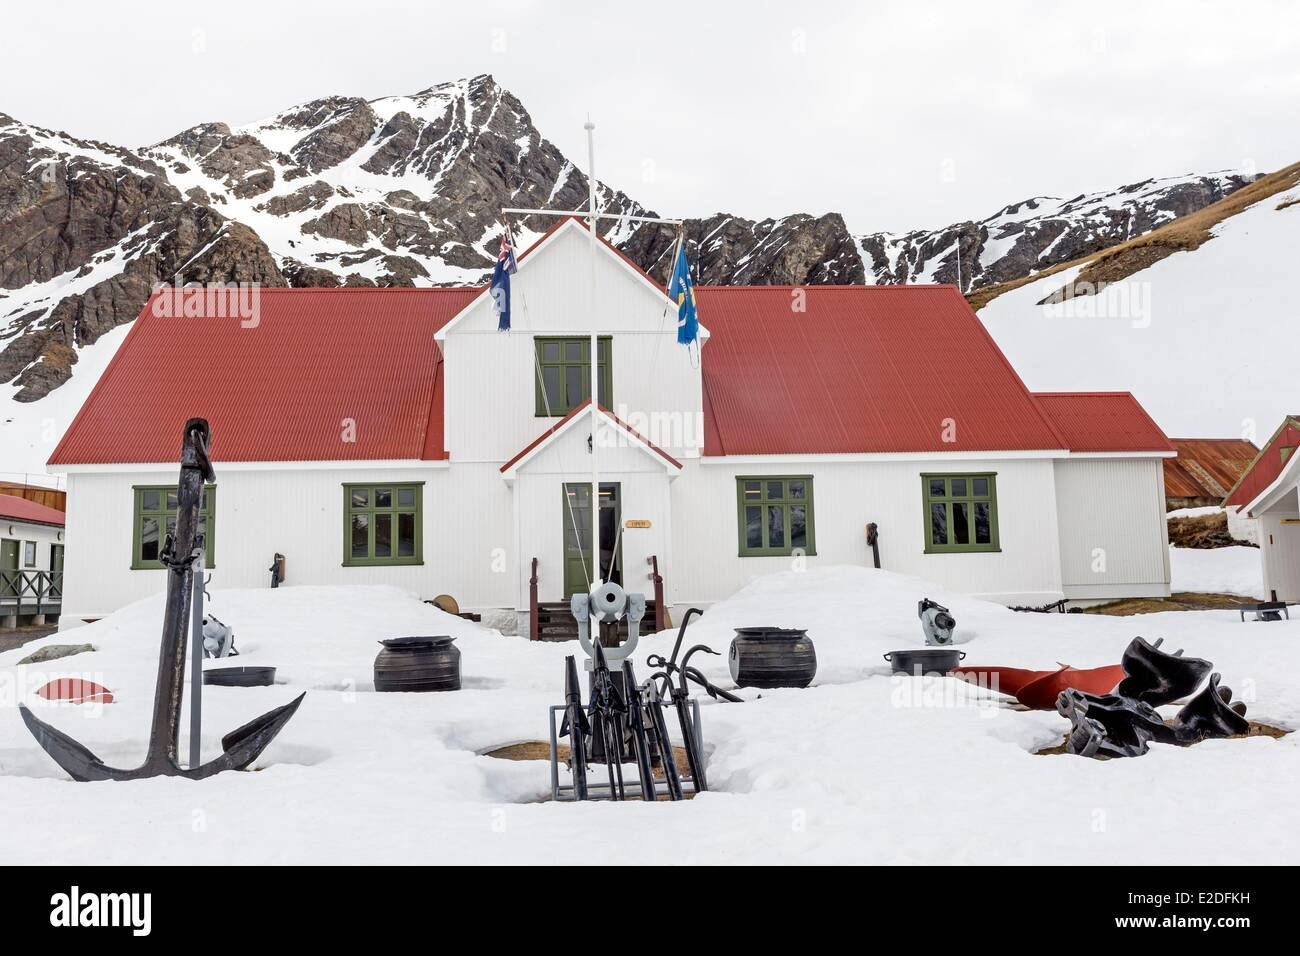 Antarctic, South Georgia Island, Whale station of Grytviken, Postoffice and museum - Stock Image